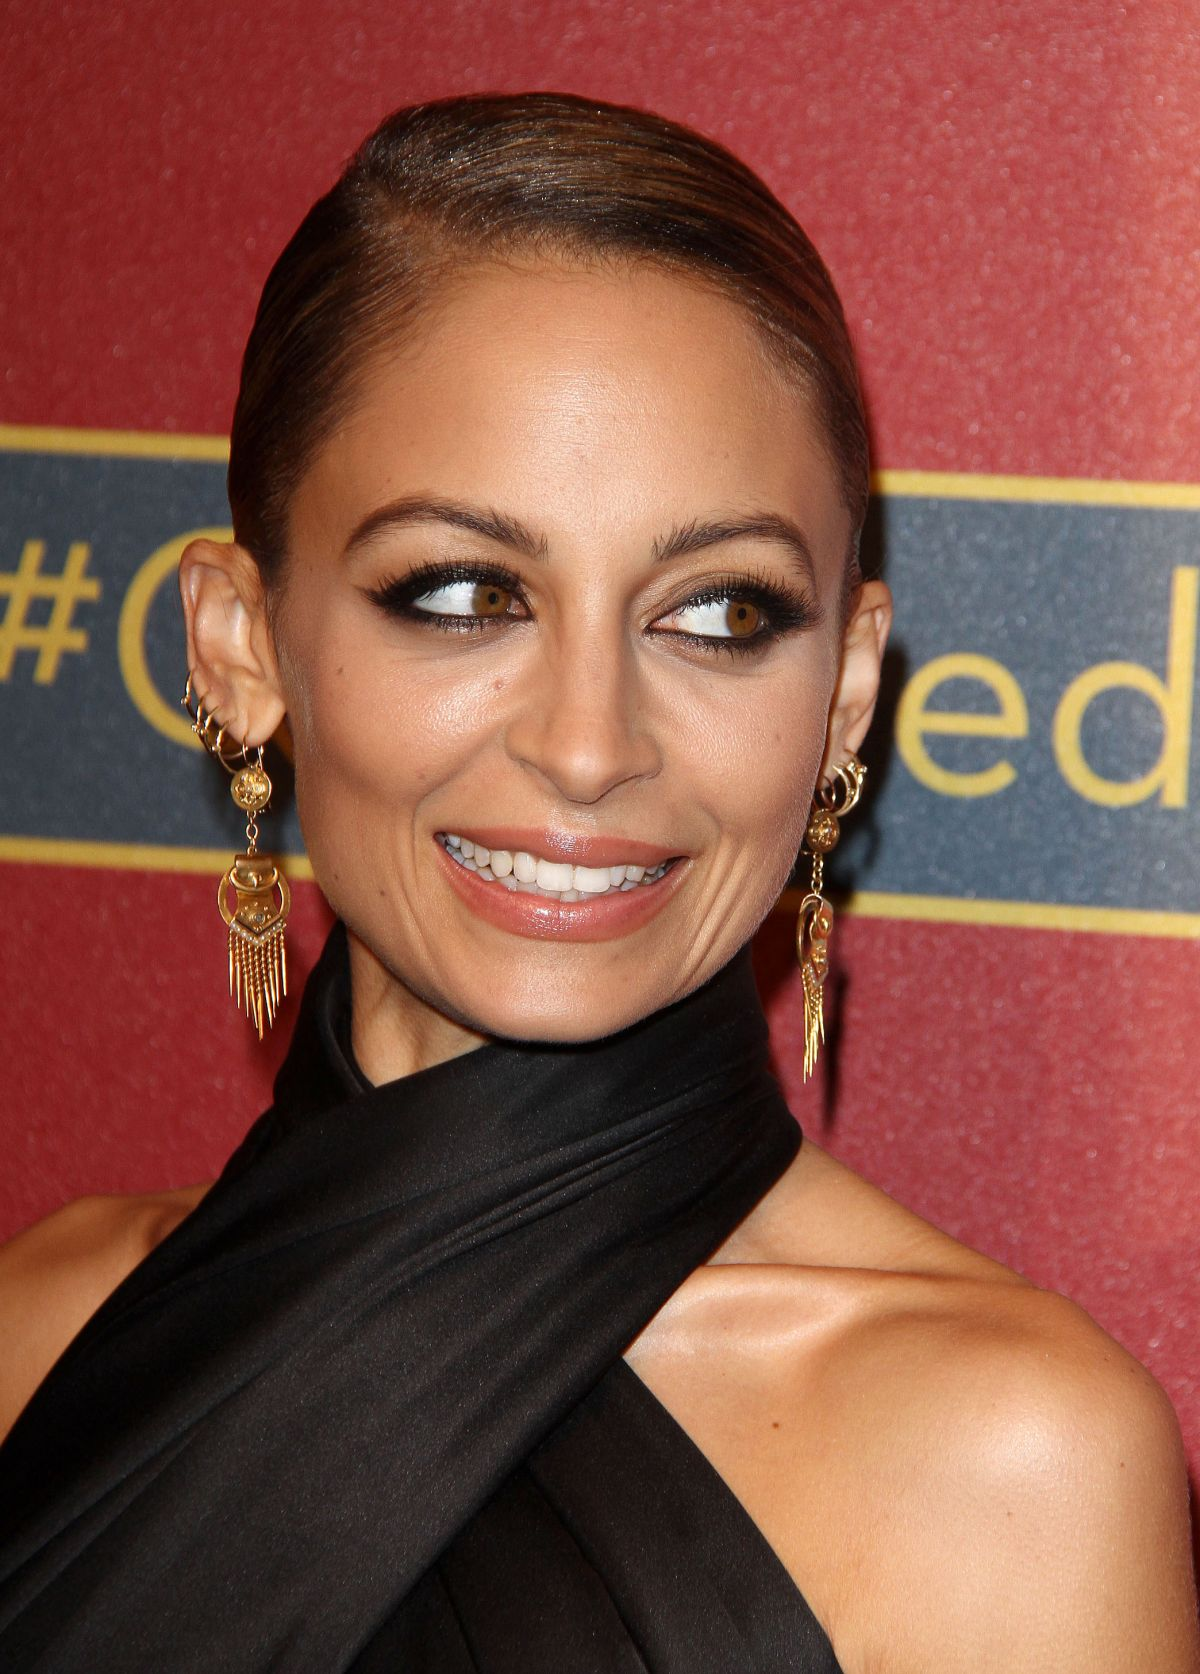 Nicole Richie At QVC Red Carpet Style Event In Beverly Hills - Celebzz ... Nicole Richie